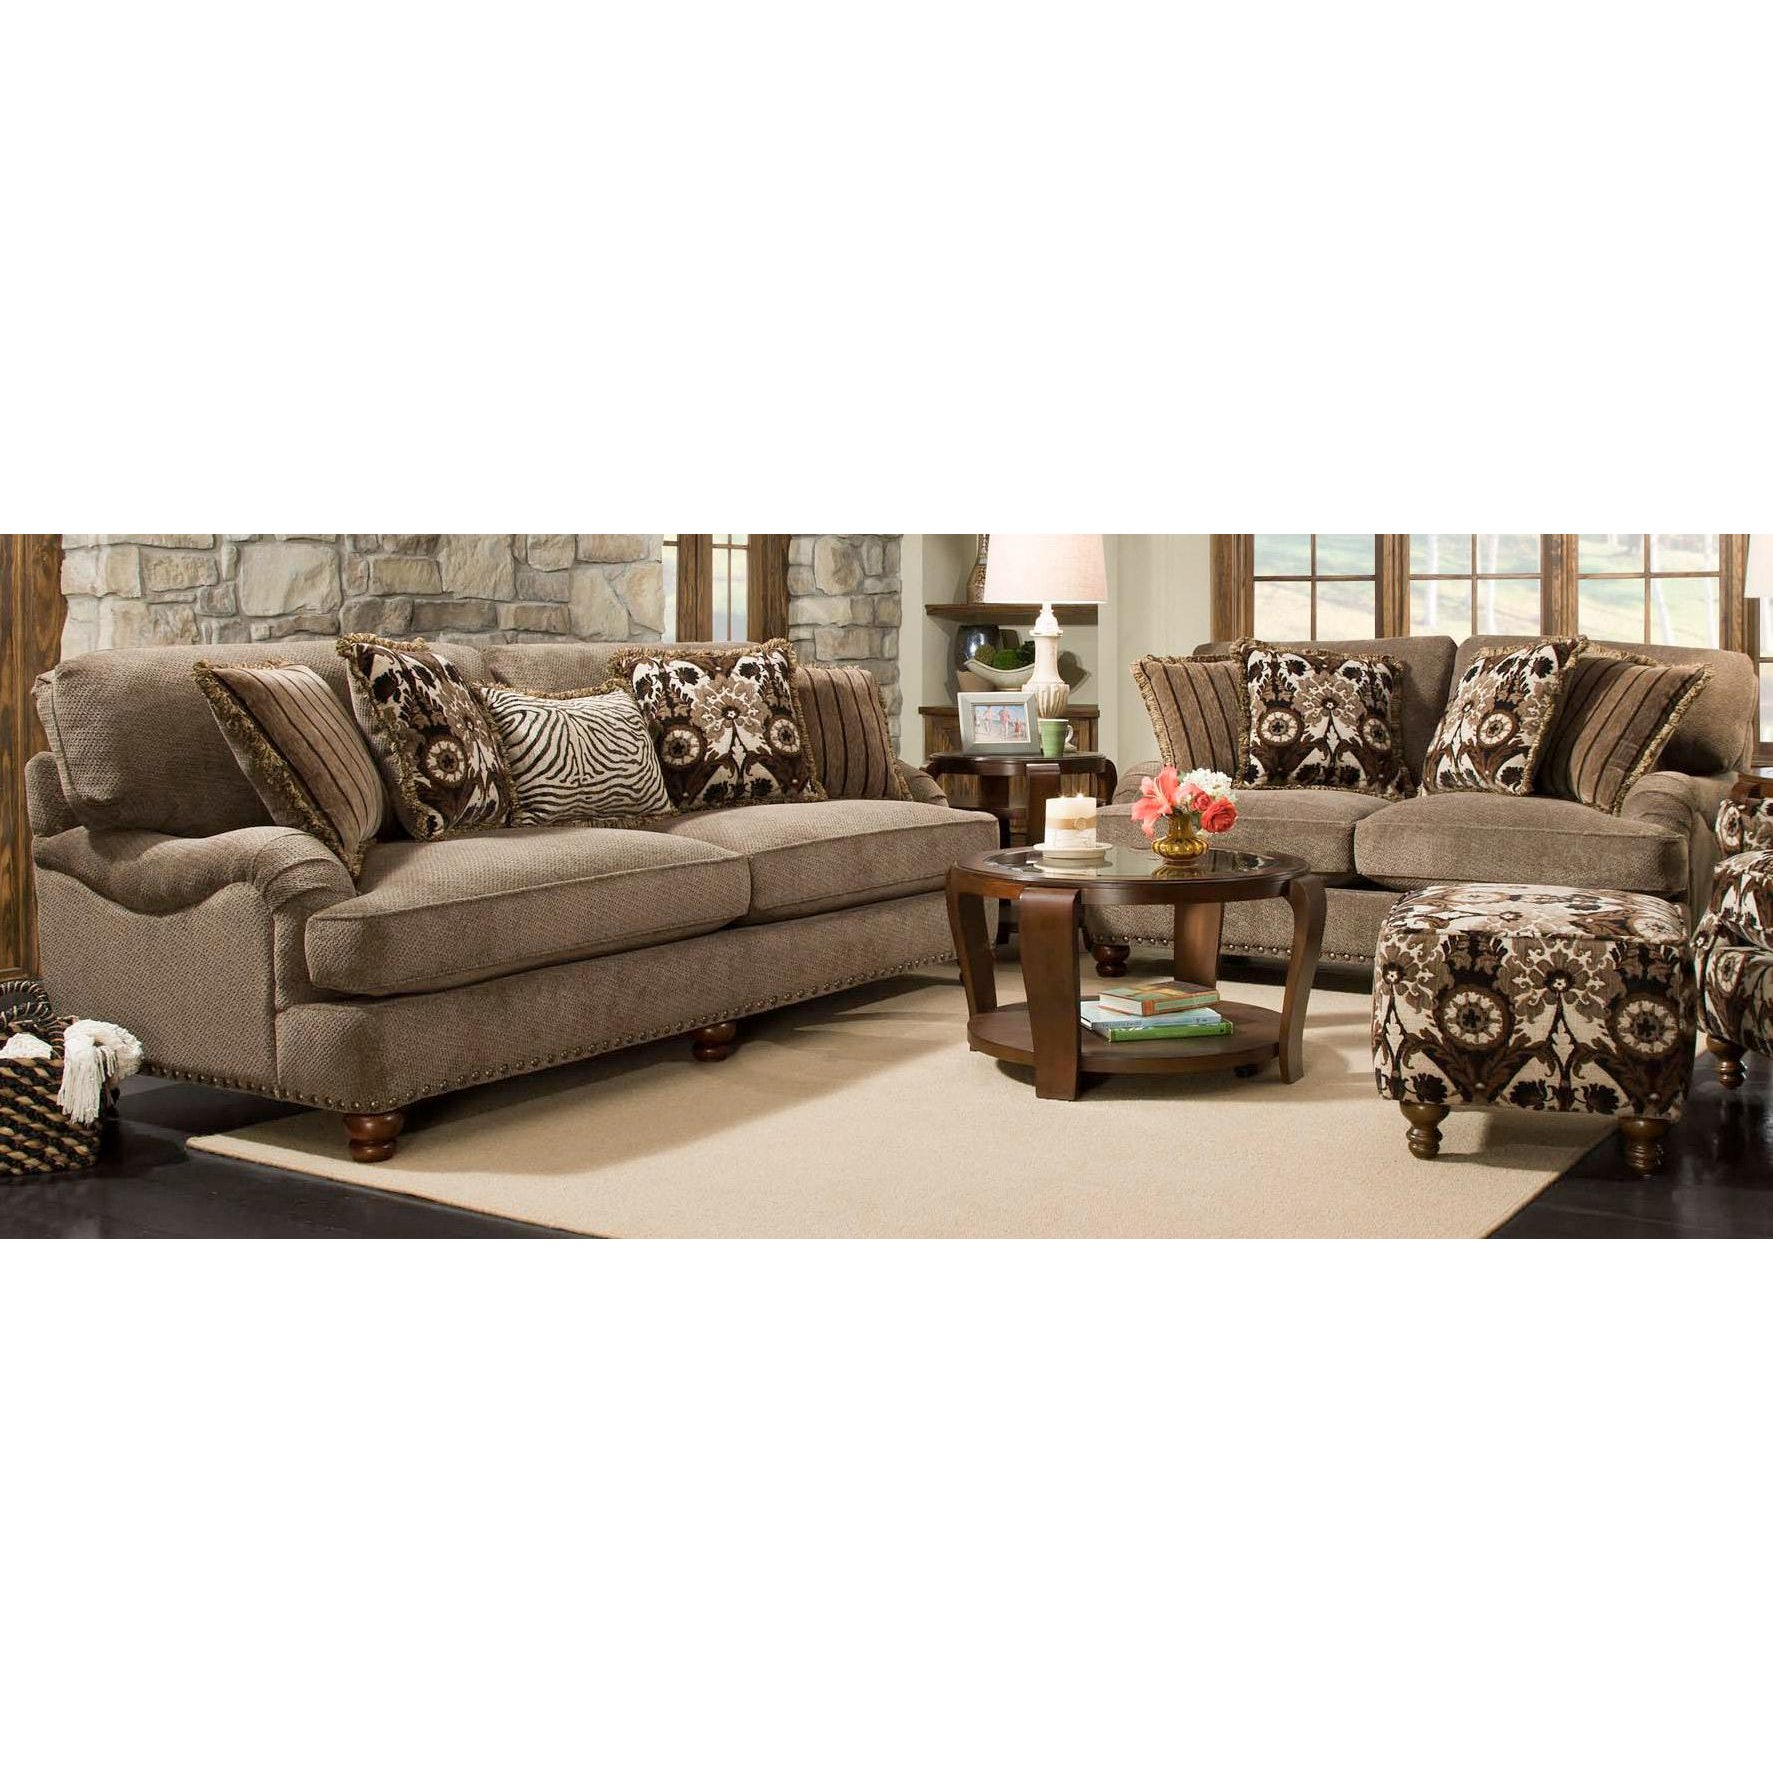 Prodigy Mink Upholstered 2 Piece Room Group